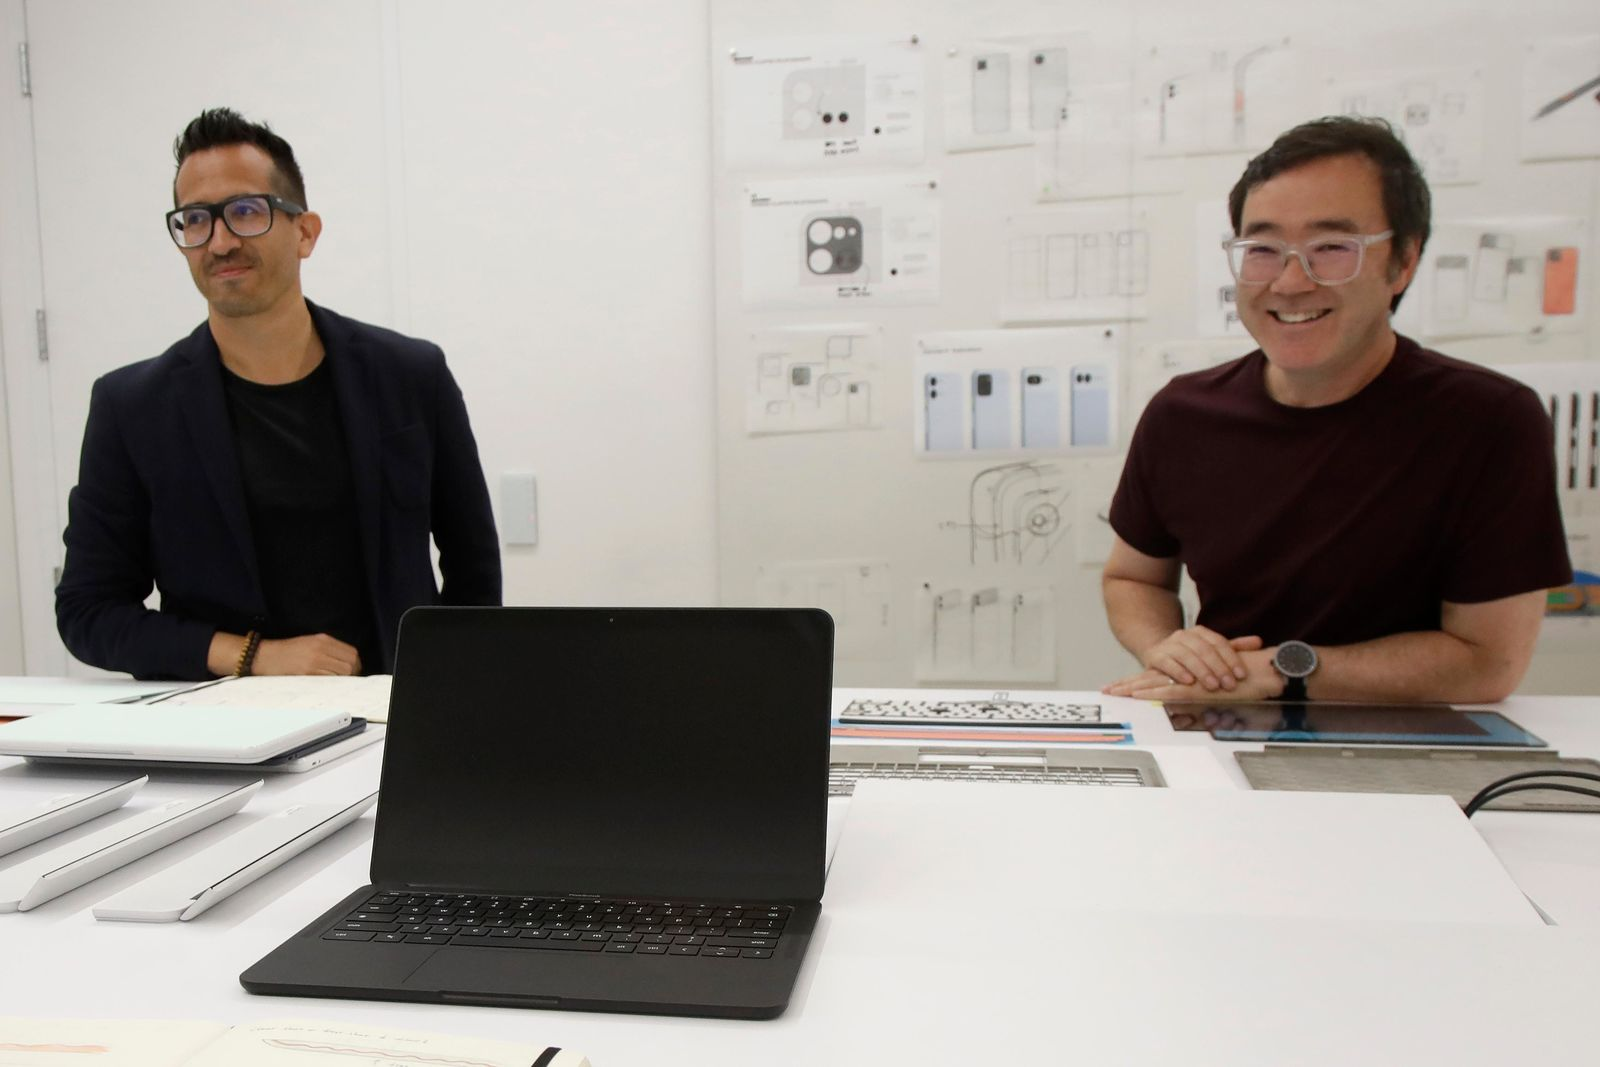 In this Tuesday, Sept. 24, 2019, photo a new Pixel laptop computer is shown in front of Alberto Villarreal, Creative Lead for Mobile and Laptops, left, and Max Yoshimoto, Design Director of Mobile and Create, at Google in Mountain View, Calif. (AP Photo/Jeff Chiu)